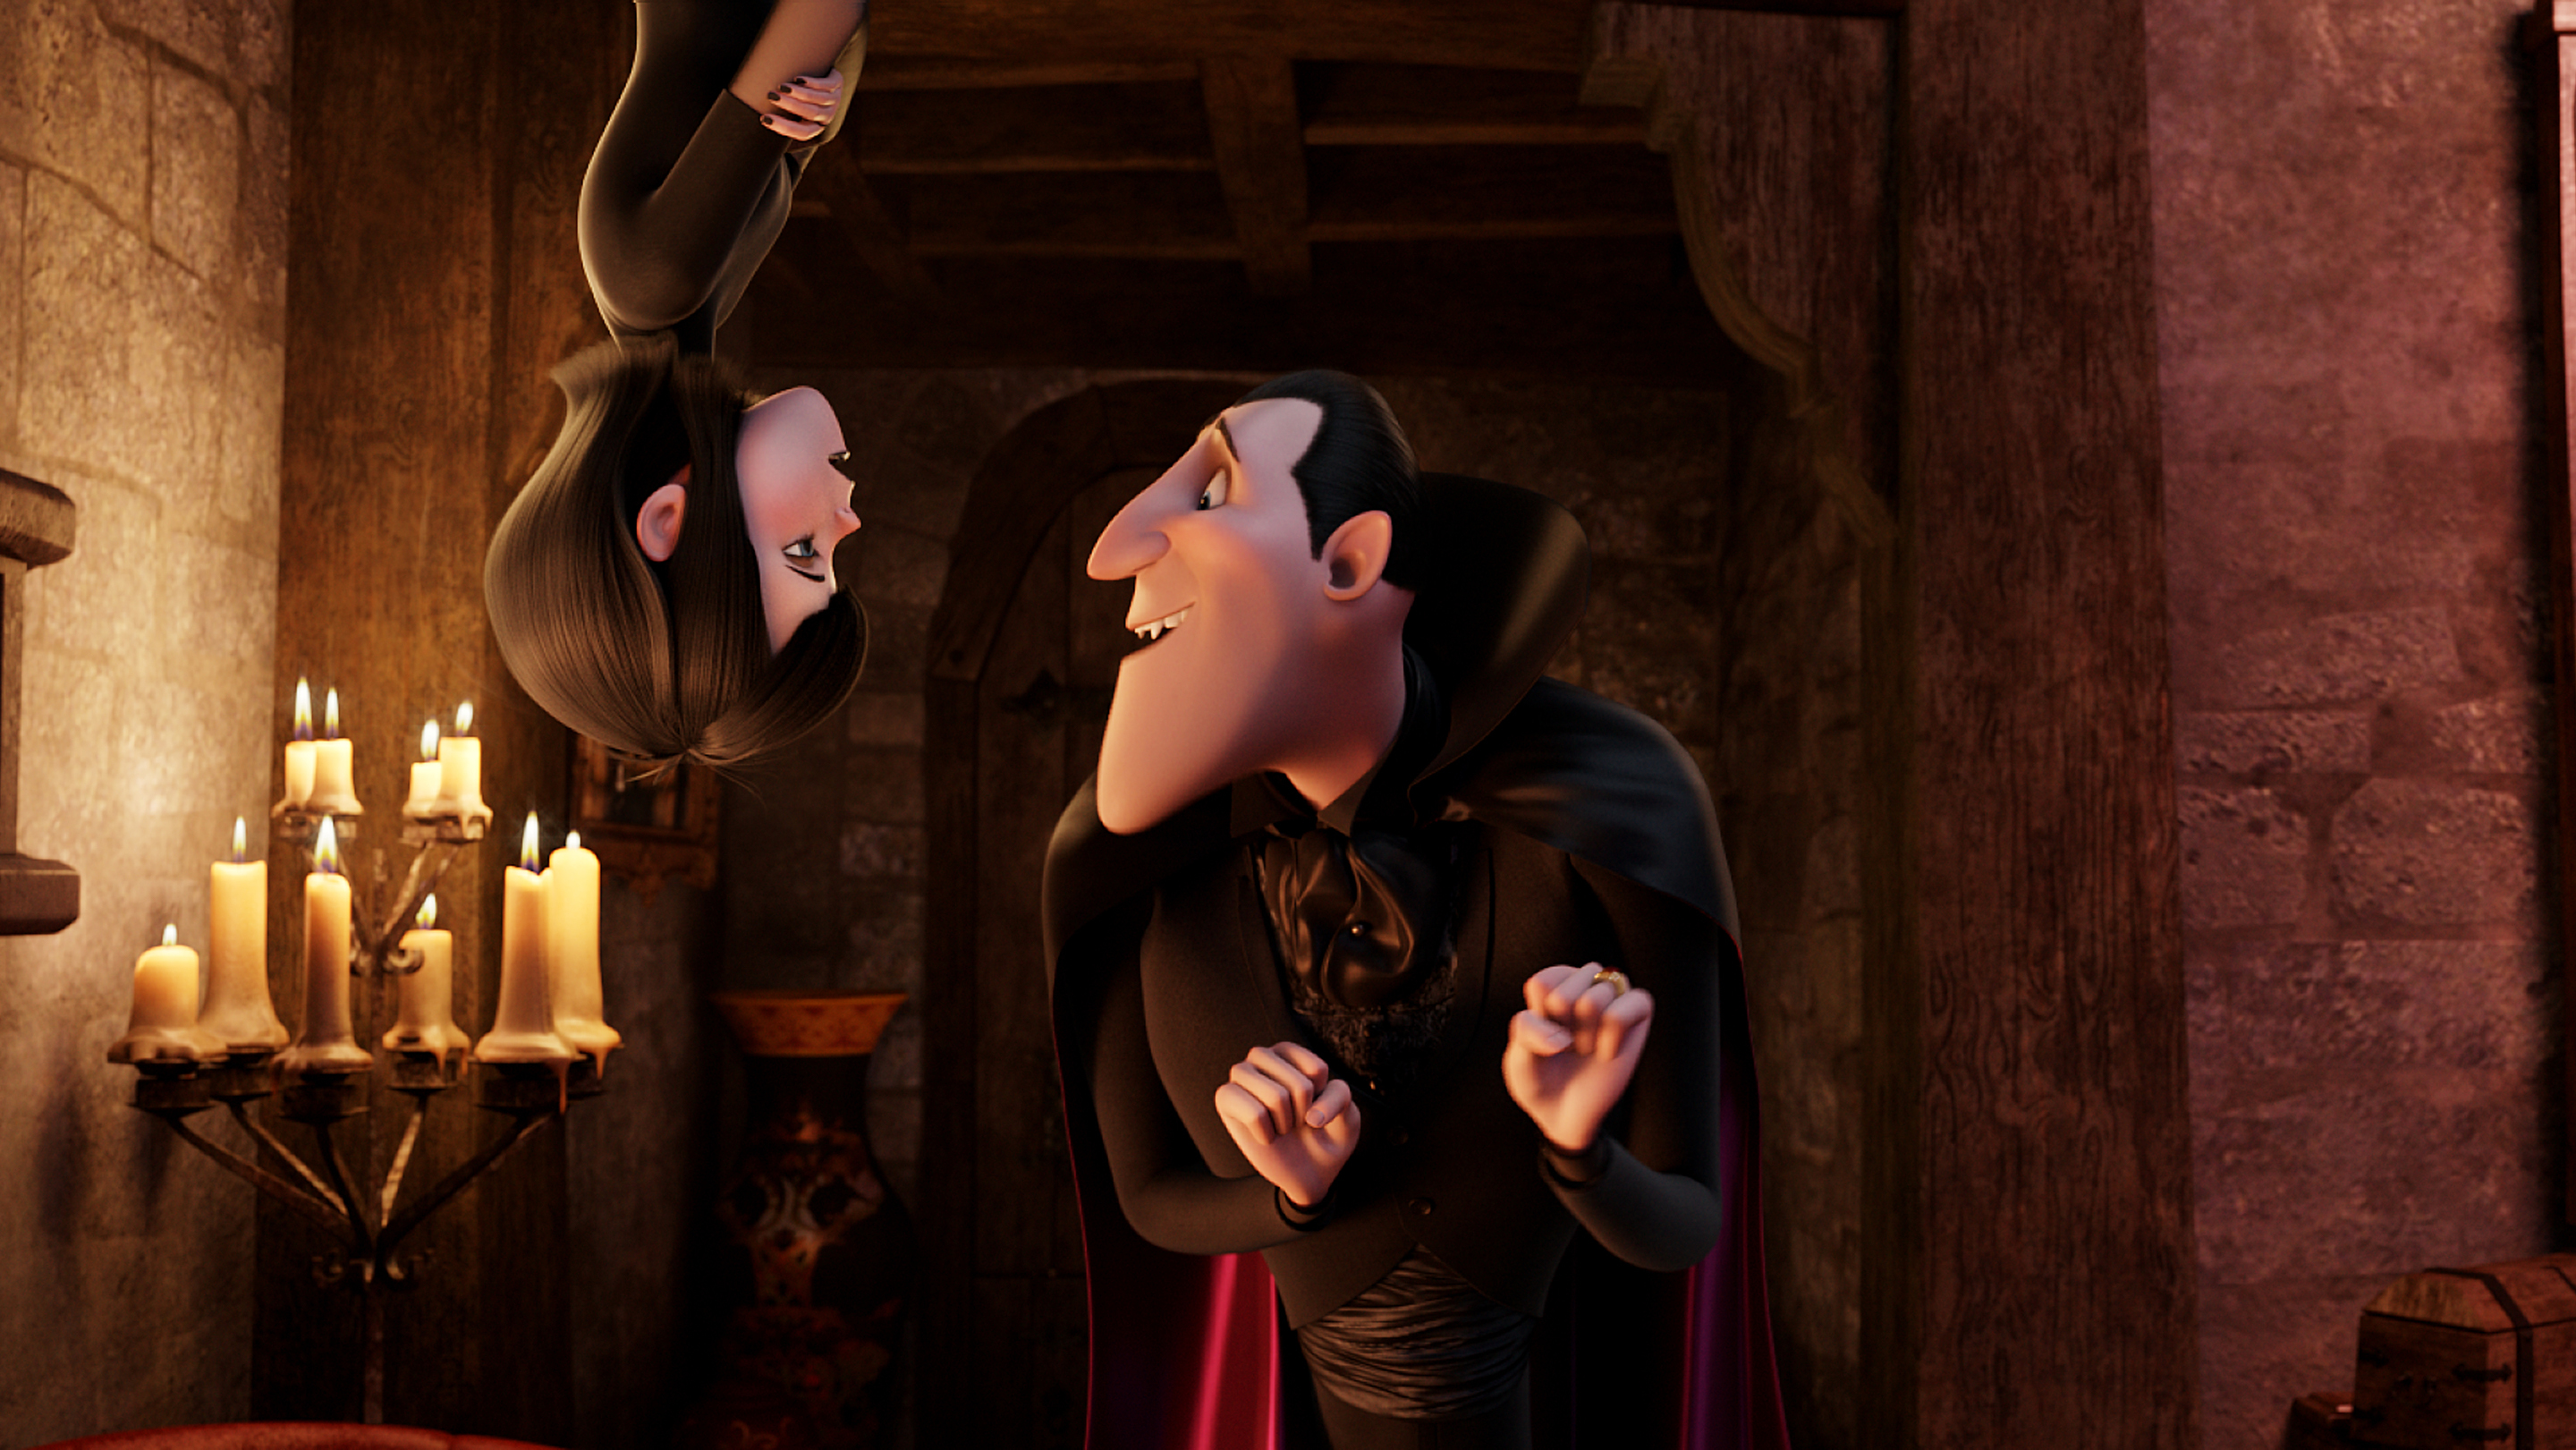 Mavis (Selena Gomez) and Dracula (Adam Sandler) i in HOTEL TRANSYLVANIA, an animated comedy from Sony Pictures Animation.